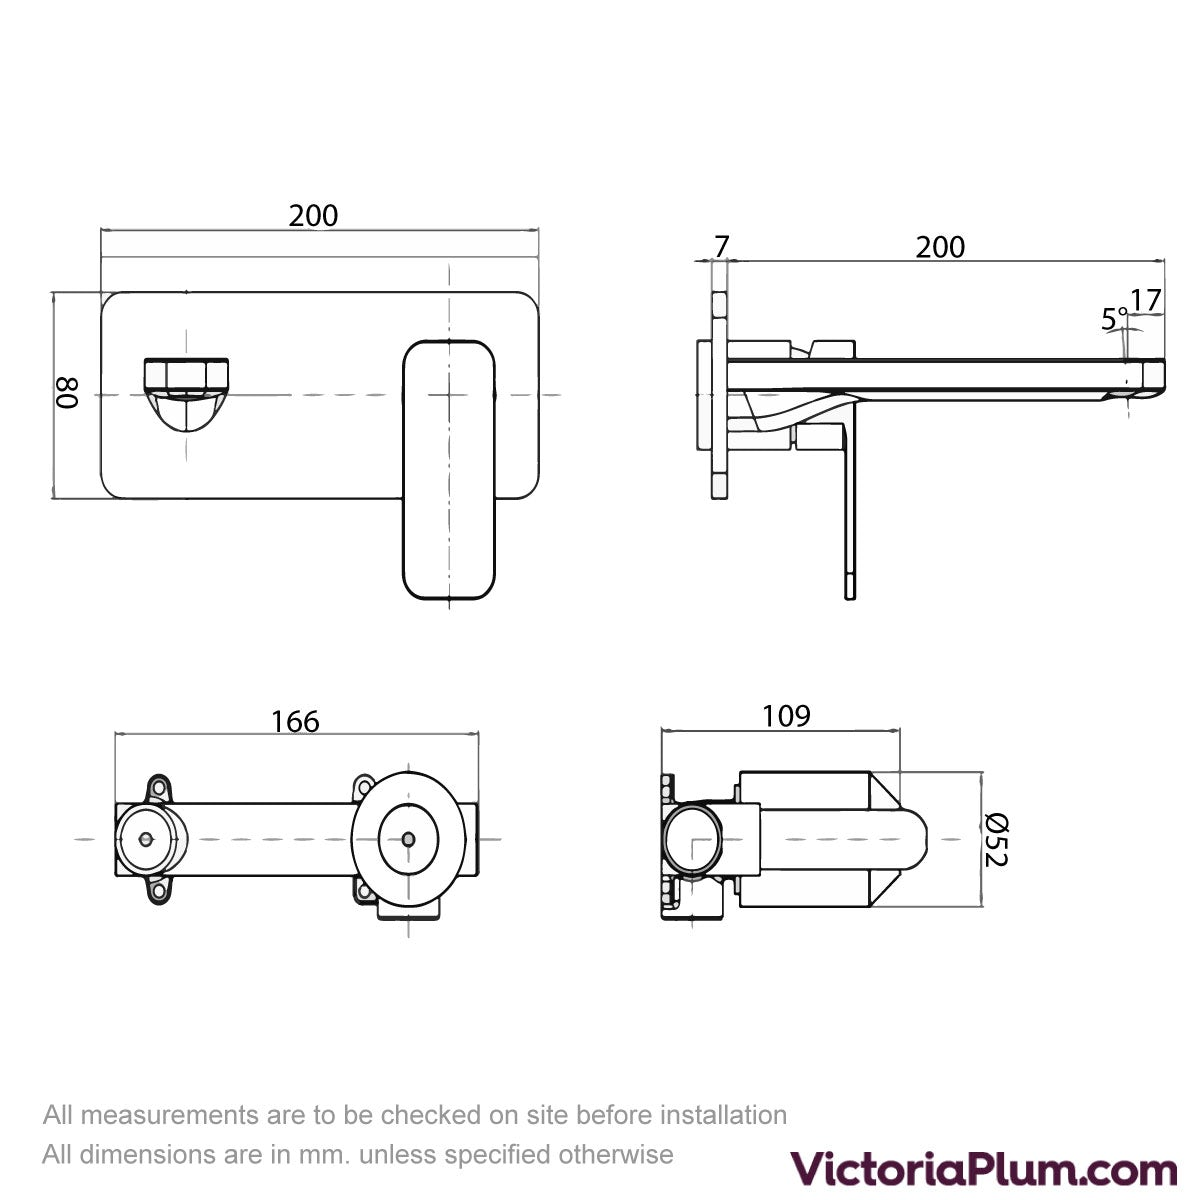 Dimensions for Mode Spencer square wall mounted basin mixer tap